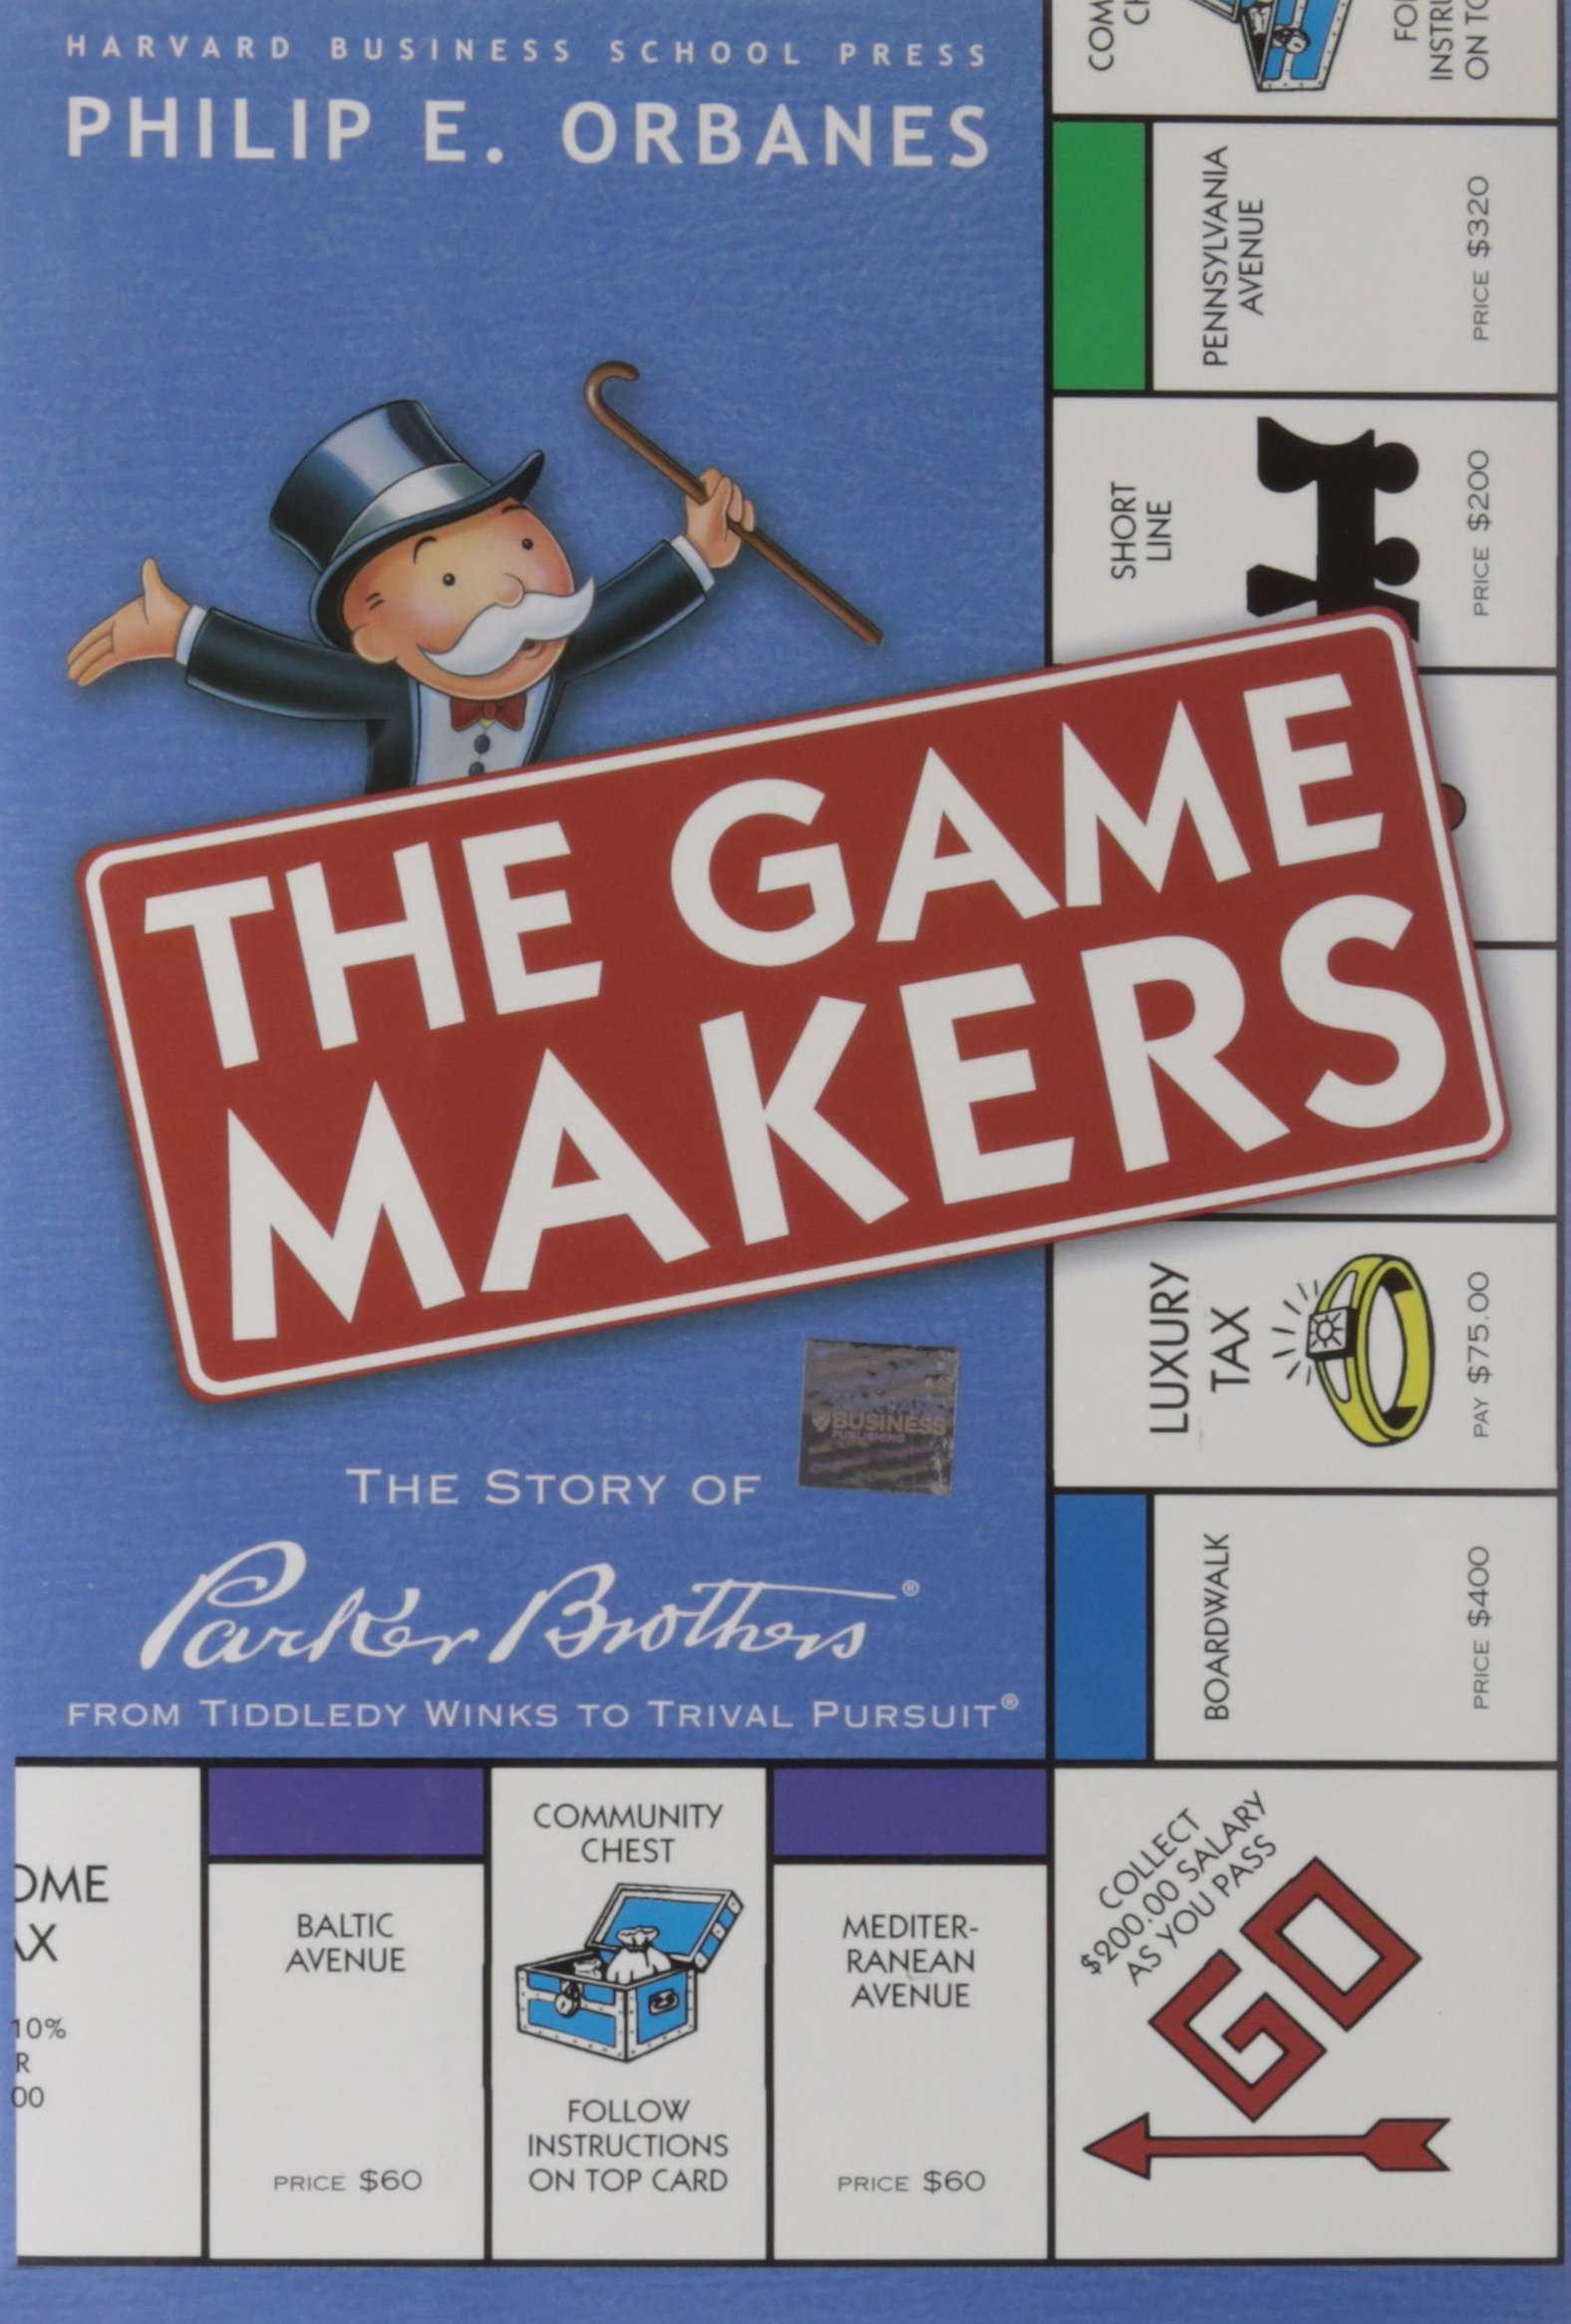 The Game Makers: The Story of Parker Brothers, from Tiddledy Winks to Trivial Pursuit: The Story of Parker Brothers, from Tiddley Winks to Trivial Pursuit: Amazon.es: Orbanes, Philip E: Libros en idiomas